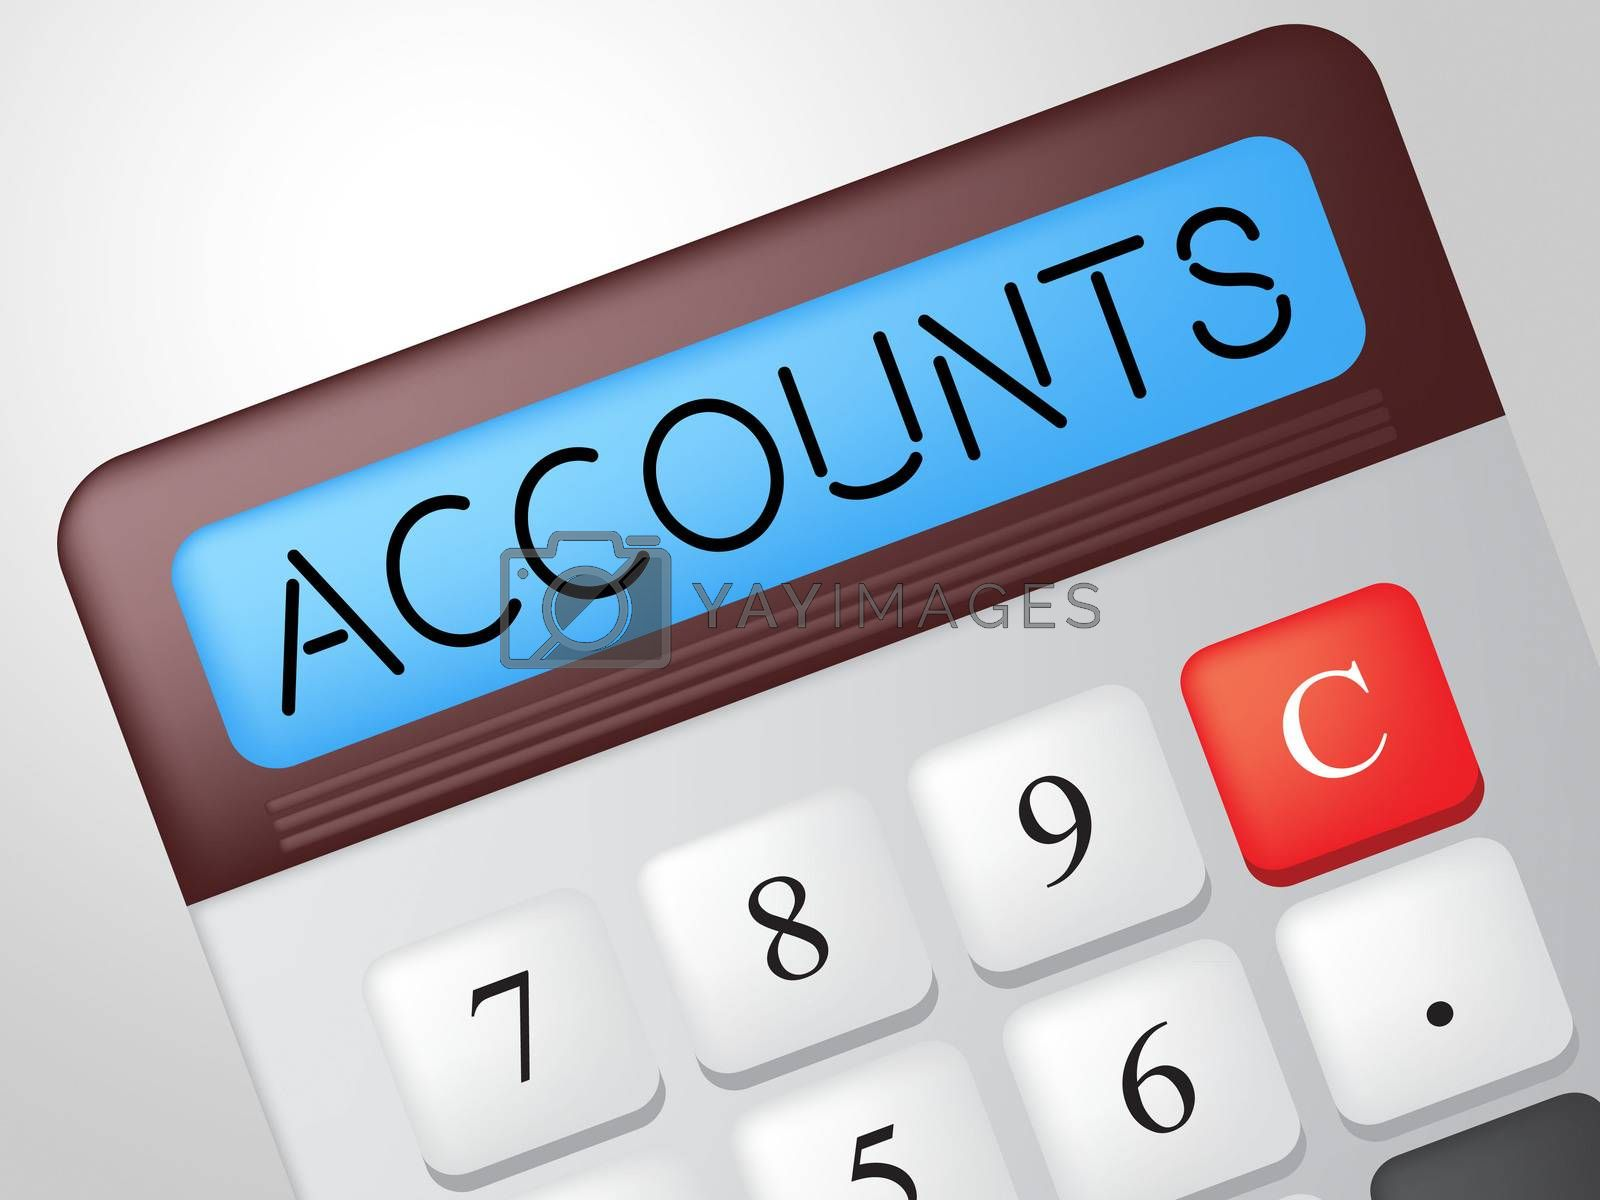 Accounts Calculator Indicates Balancing The Books And Accounting by stuartmiles